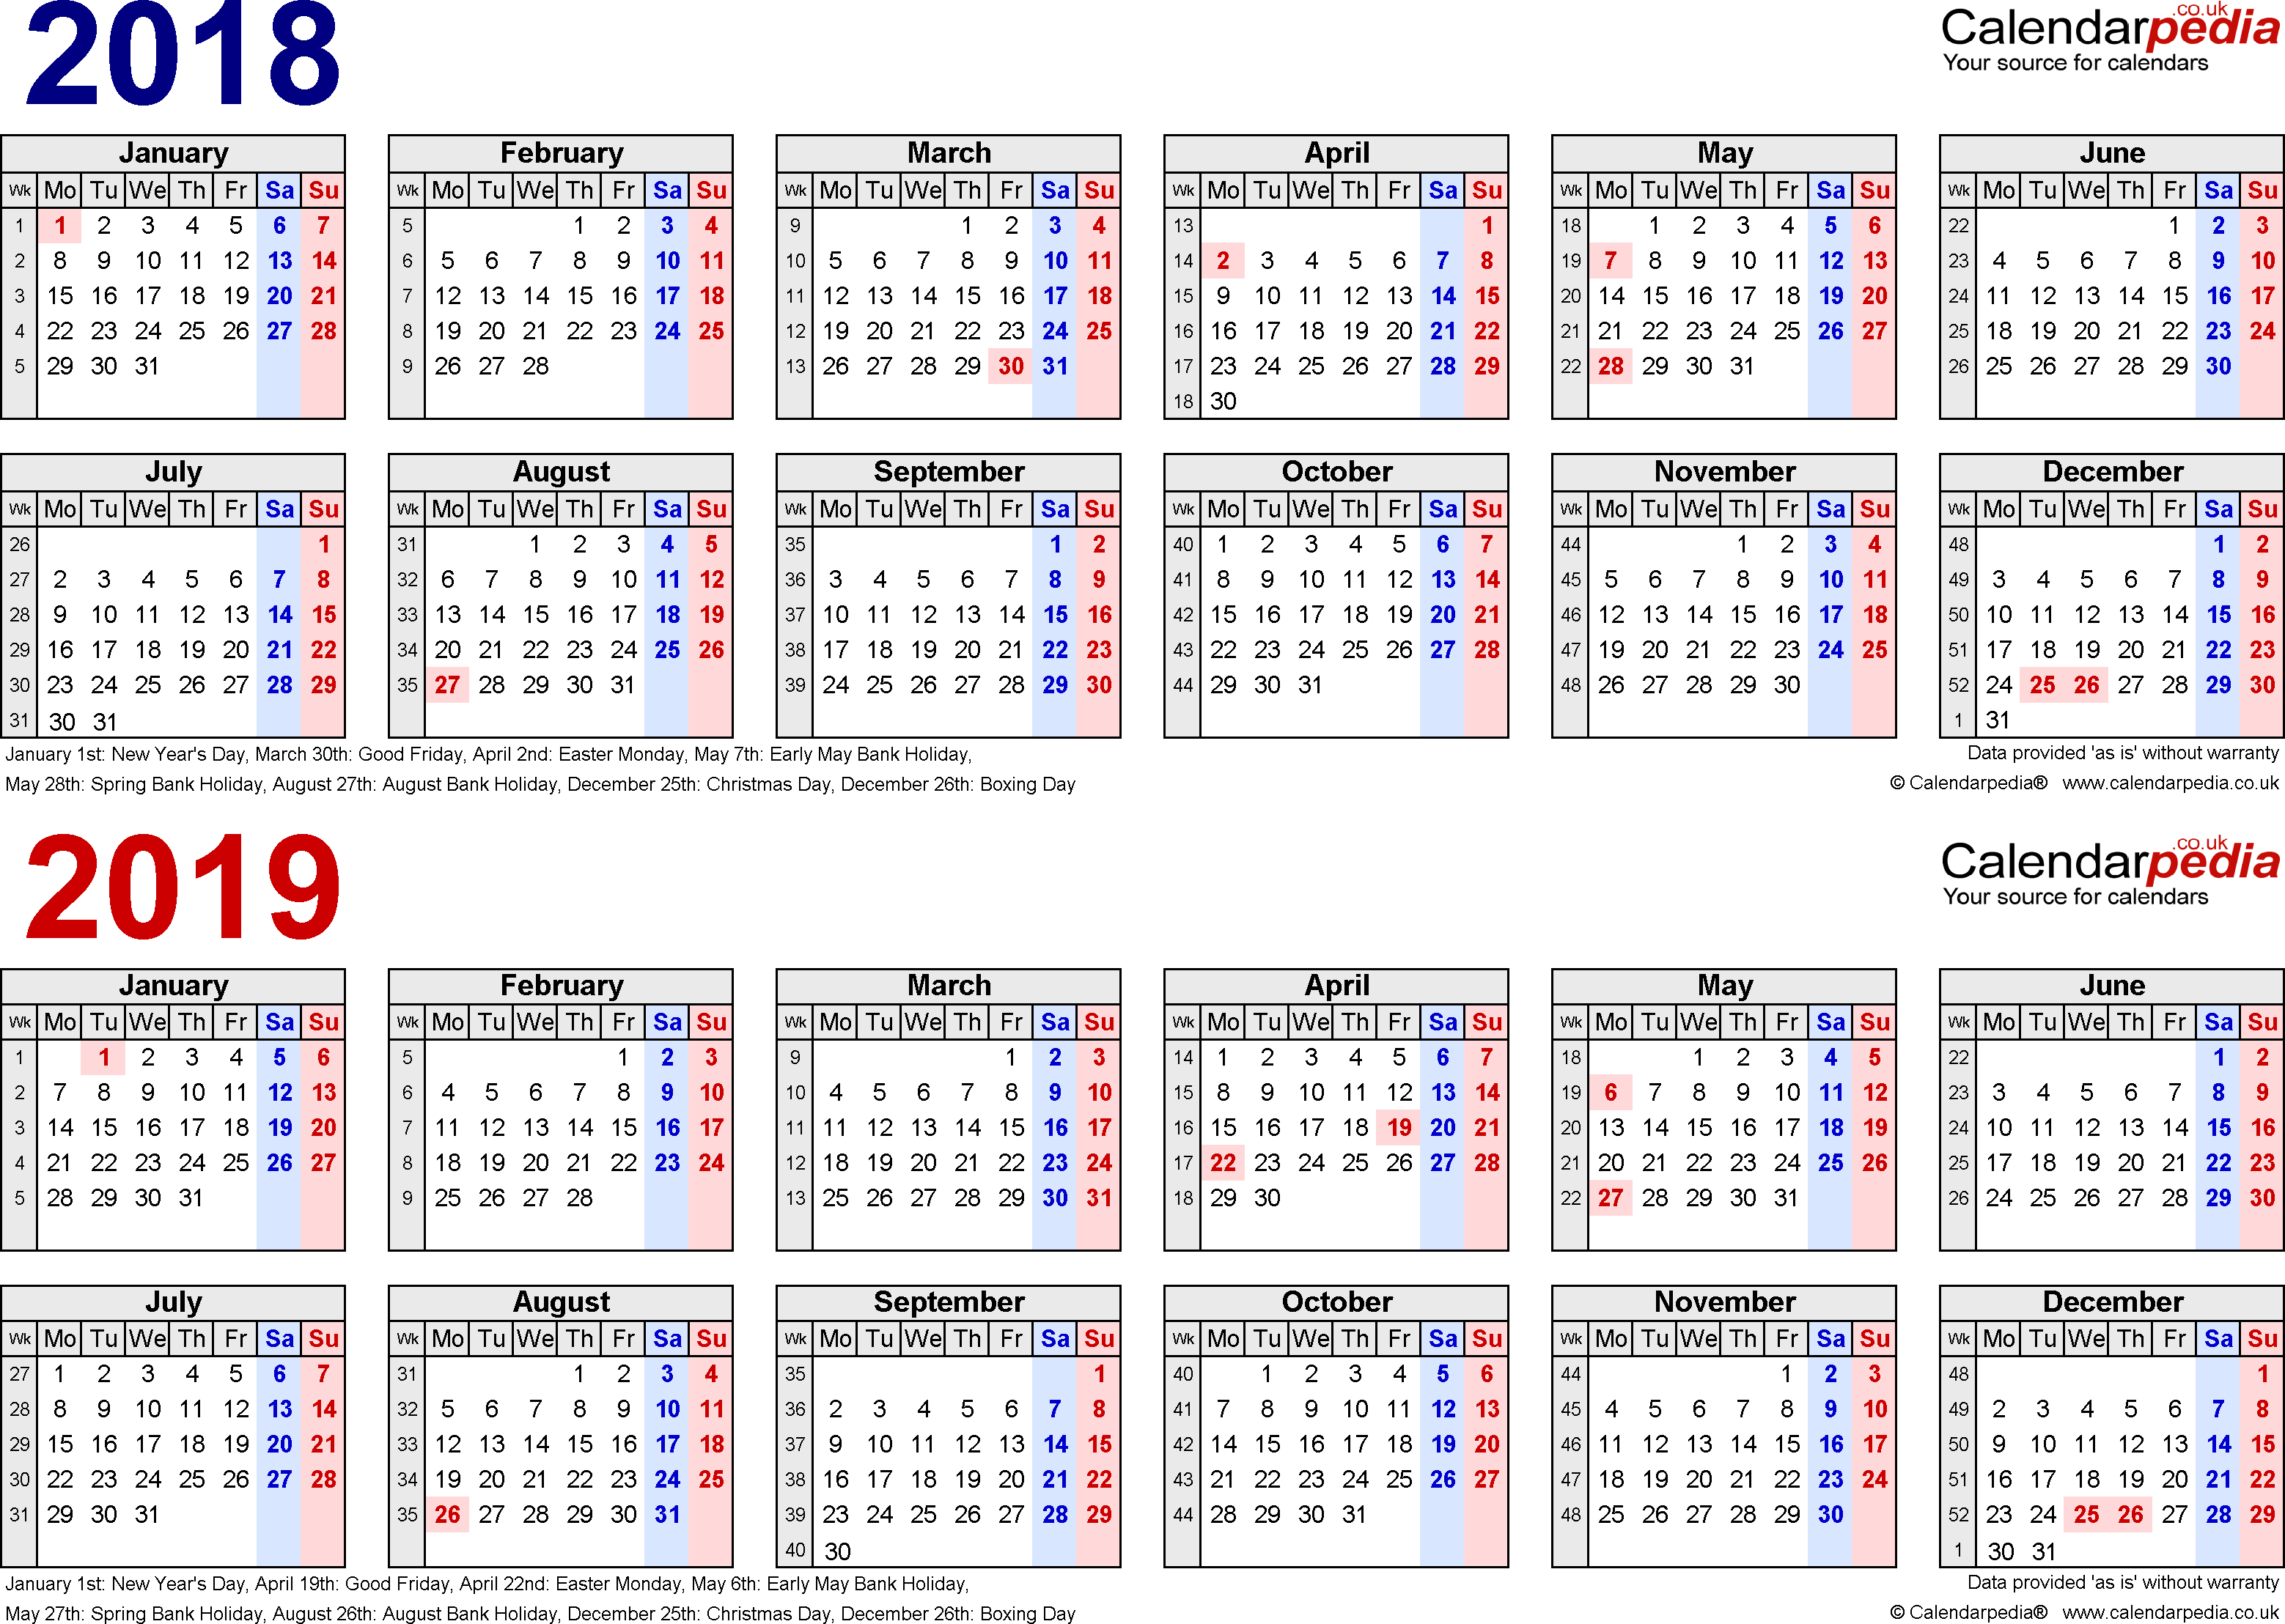 Template 1: Word template for two year calendar 2018/2019 in blue/red (landscape orientation, 1 page, A4)